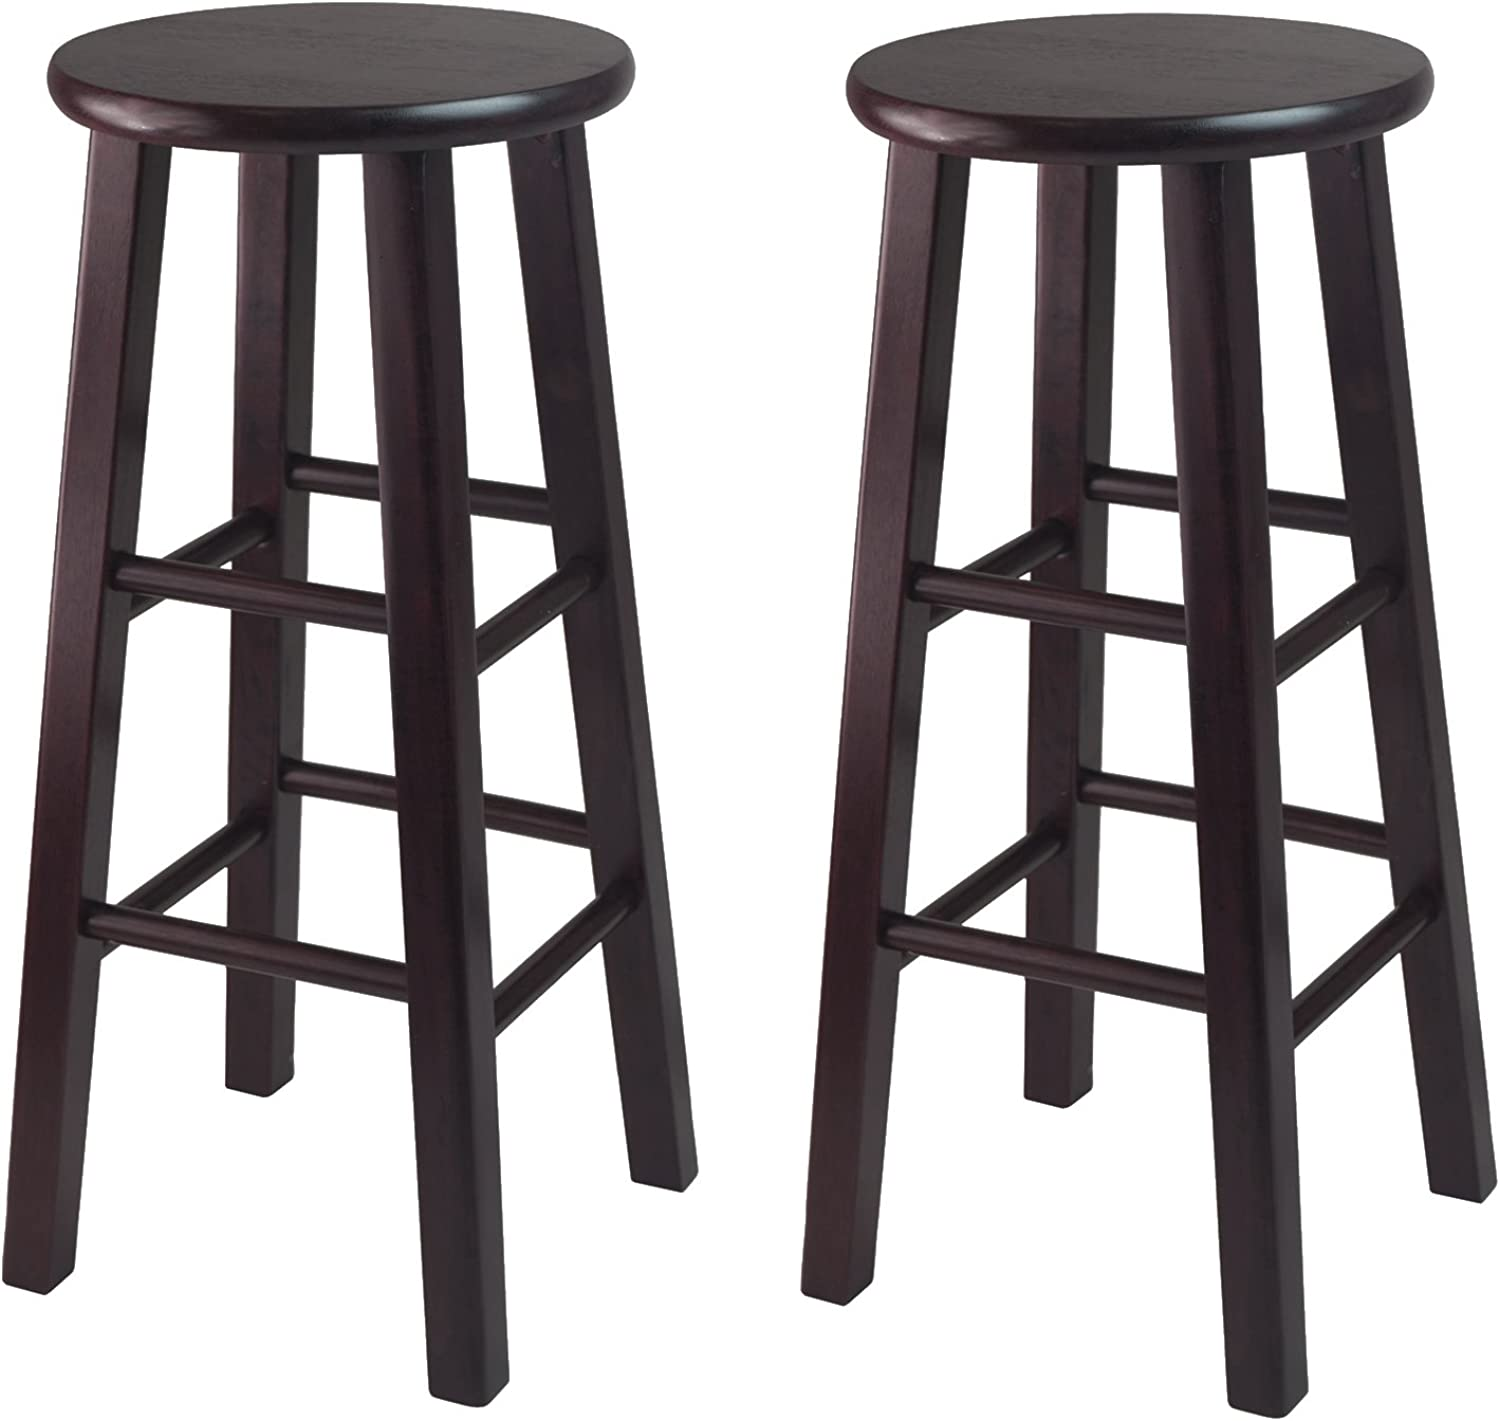 Winsome Set of 2 Solid Wood 30  Bar Stool with Square Legs - Espresso